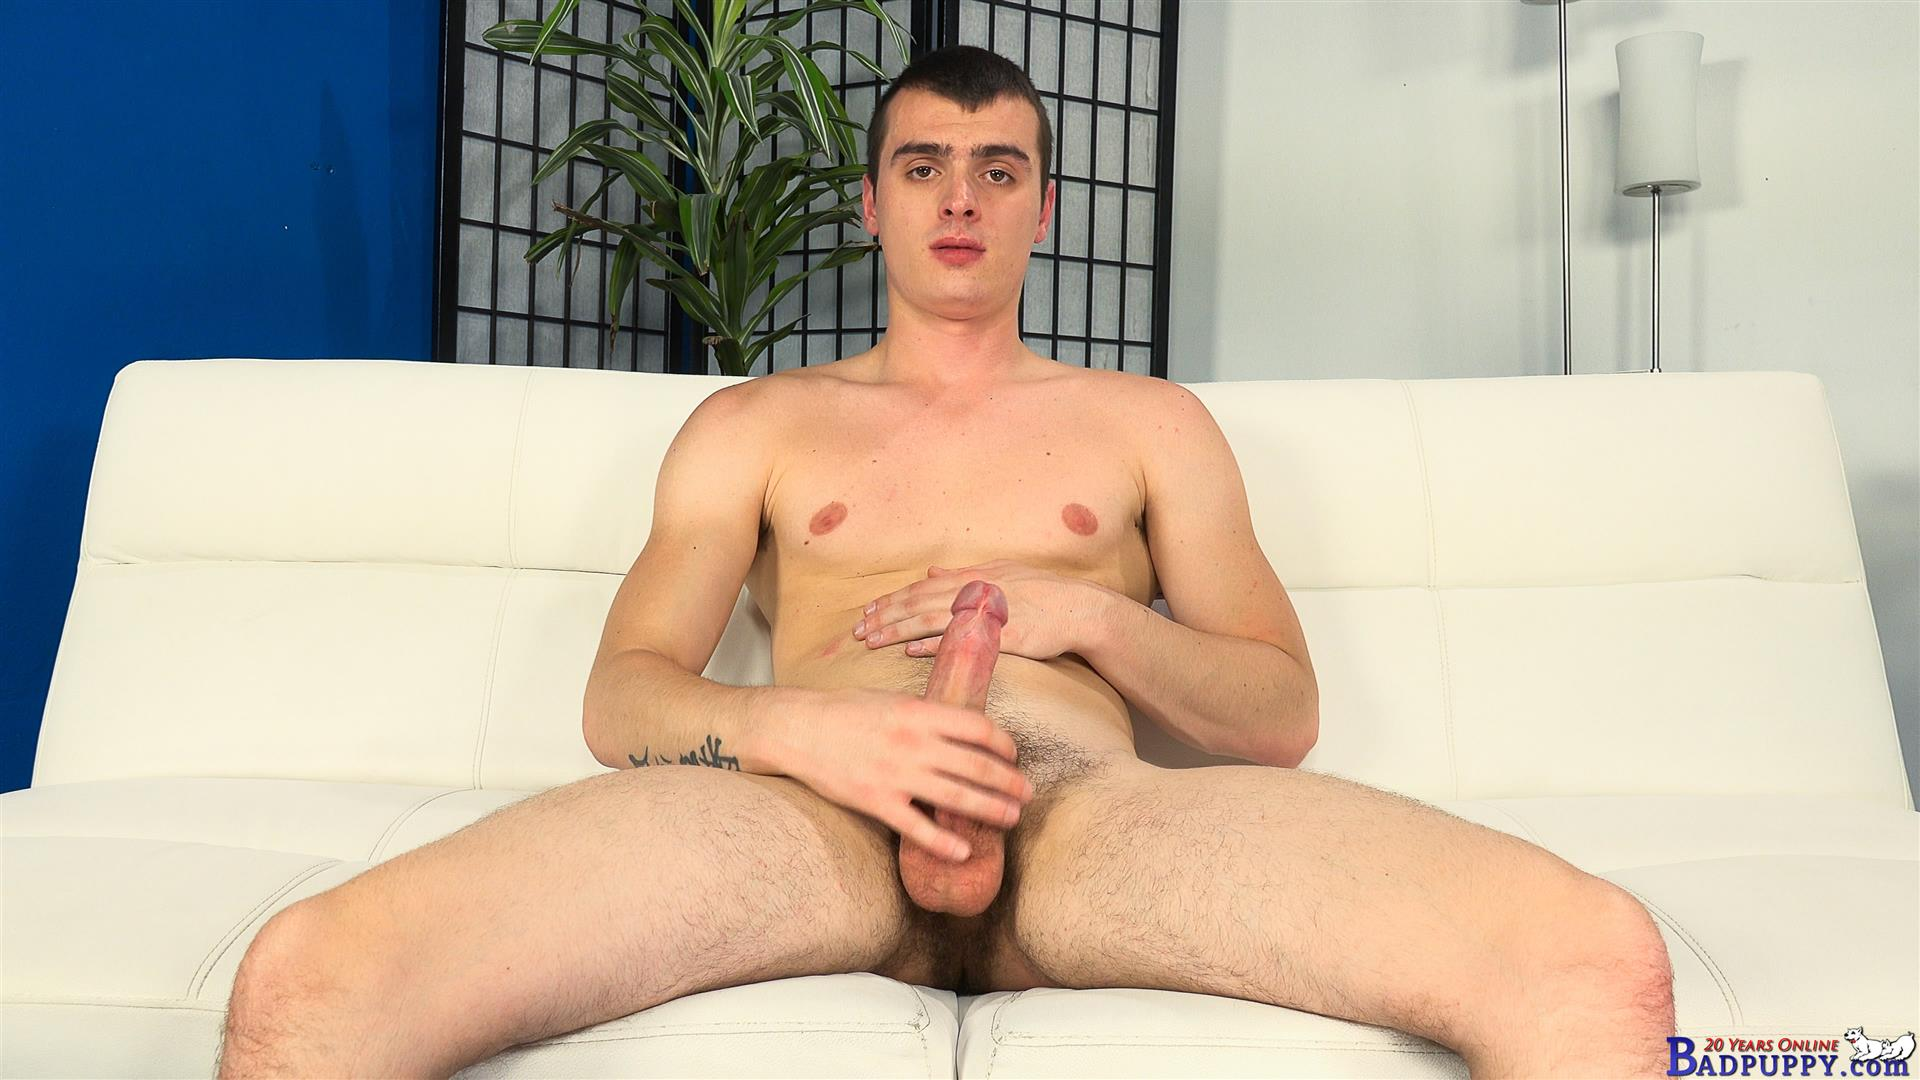 Valer-Starek-Badpuppy-Masturbation-Big-Uncut-Cock-Hairy-Ass-Amateur-Gay-Porn-12 Young Czech Guy Auditions For Gay Porn With His Big Uncut Cock And Hairy Ass